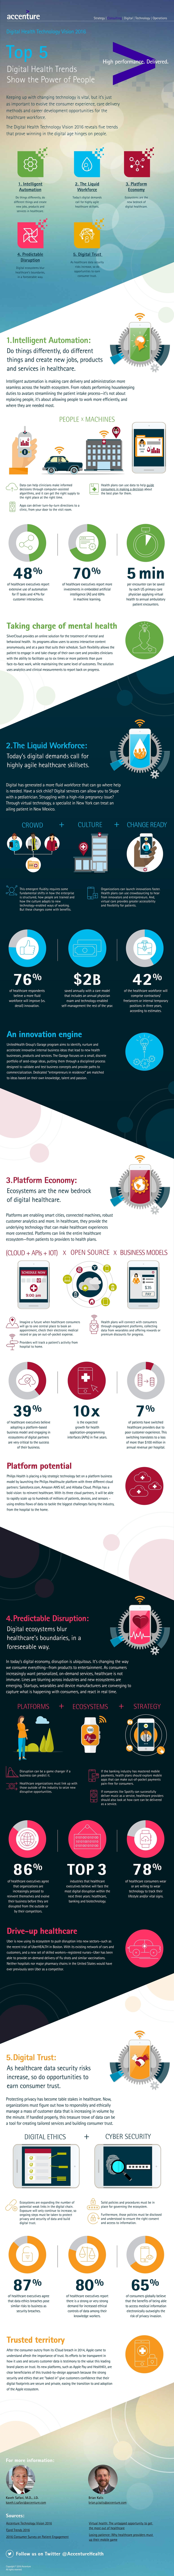 rsz_1the_digital_health_tech_vision_2016_infographic